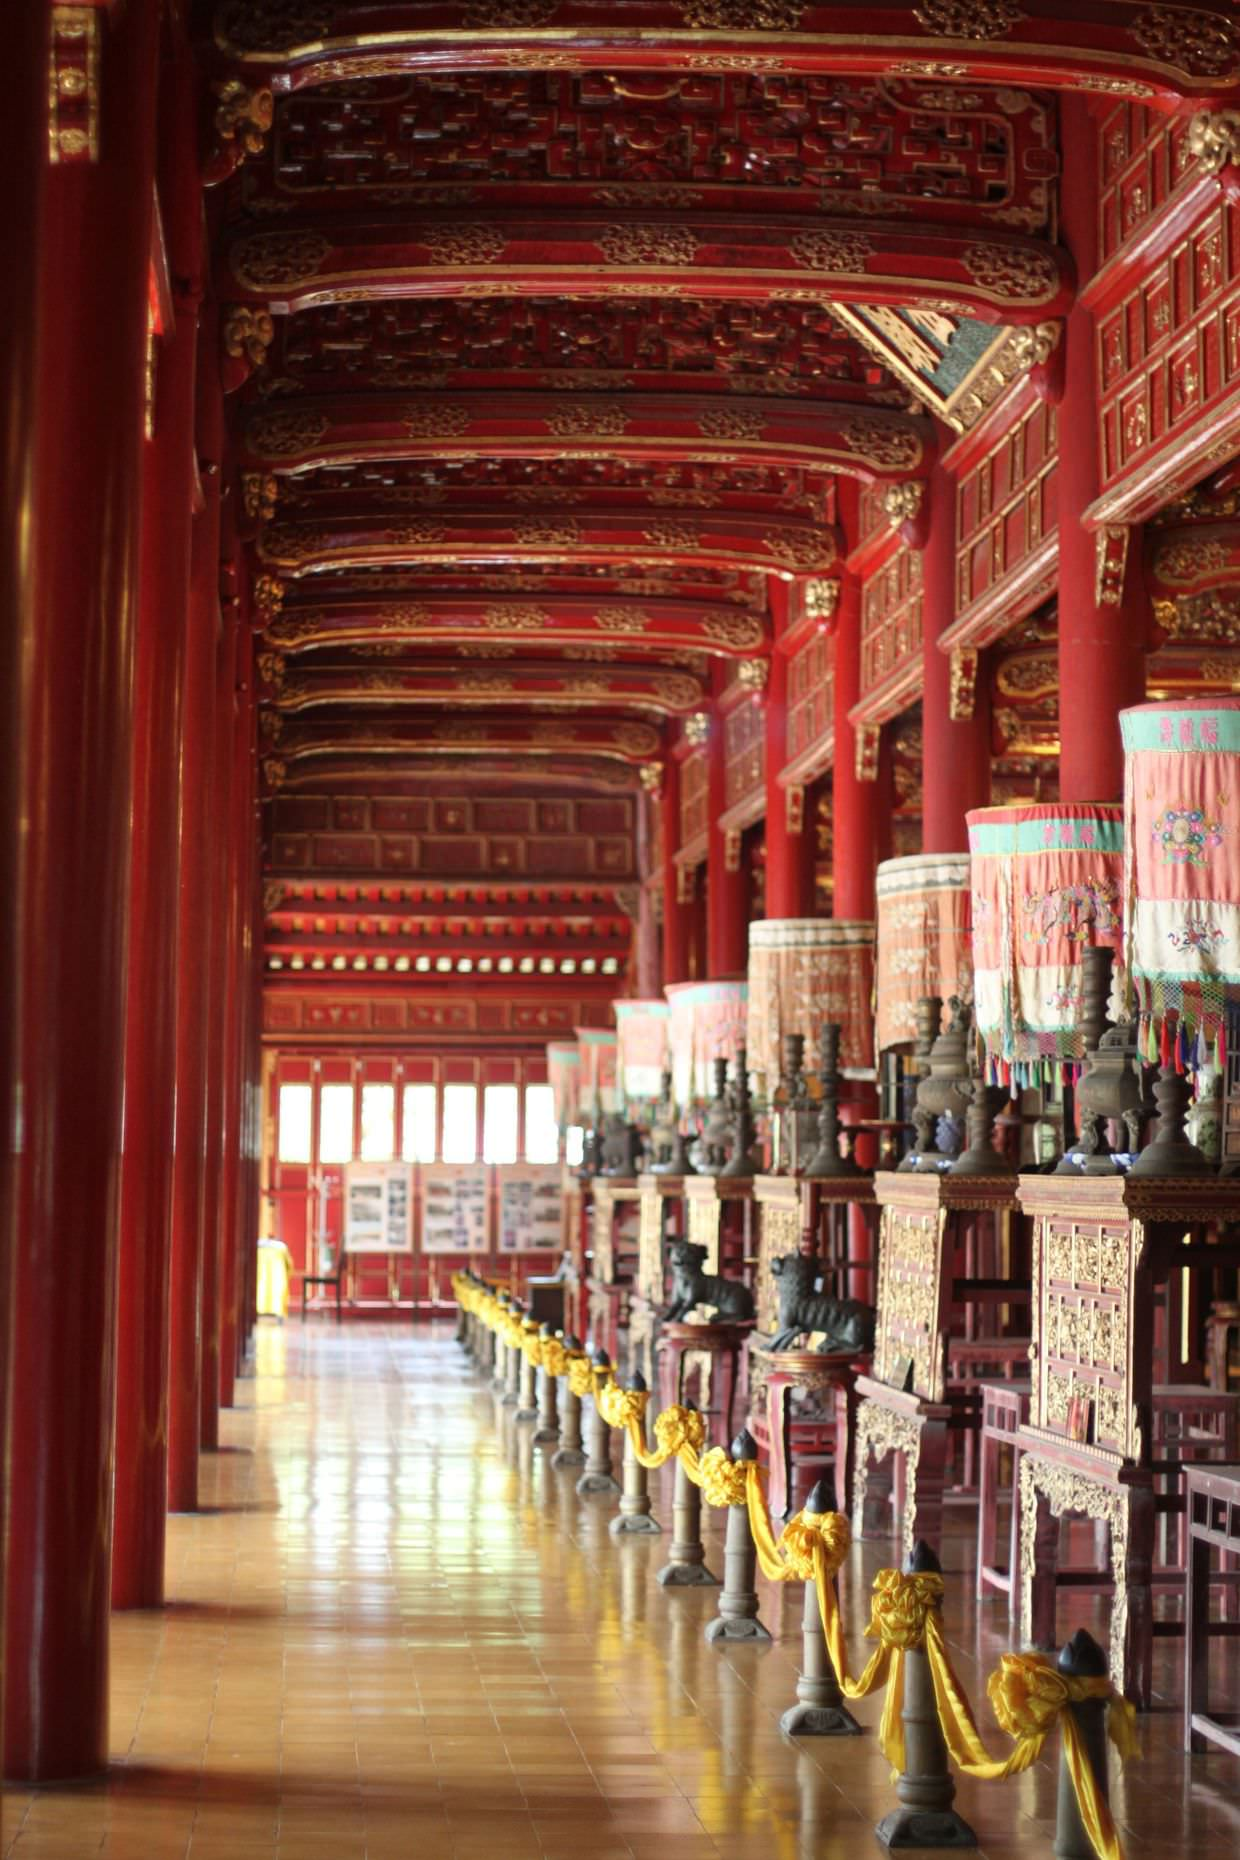 Inside the To Mieu Temple